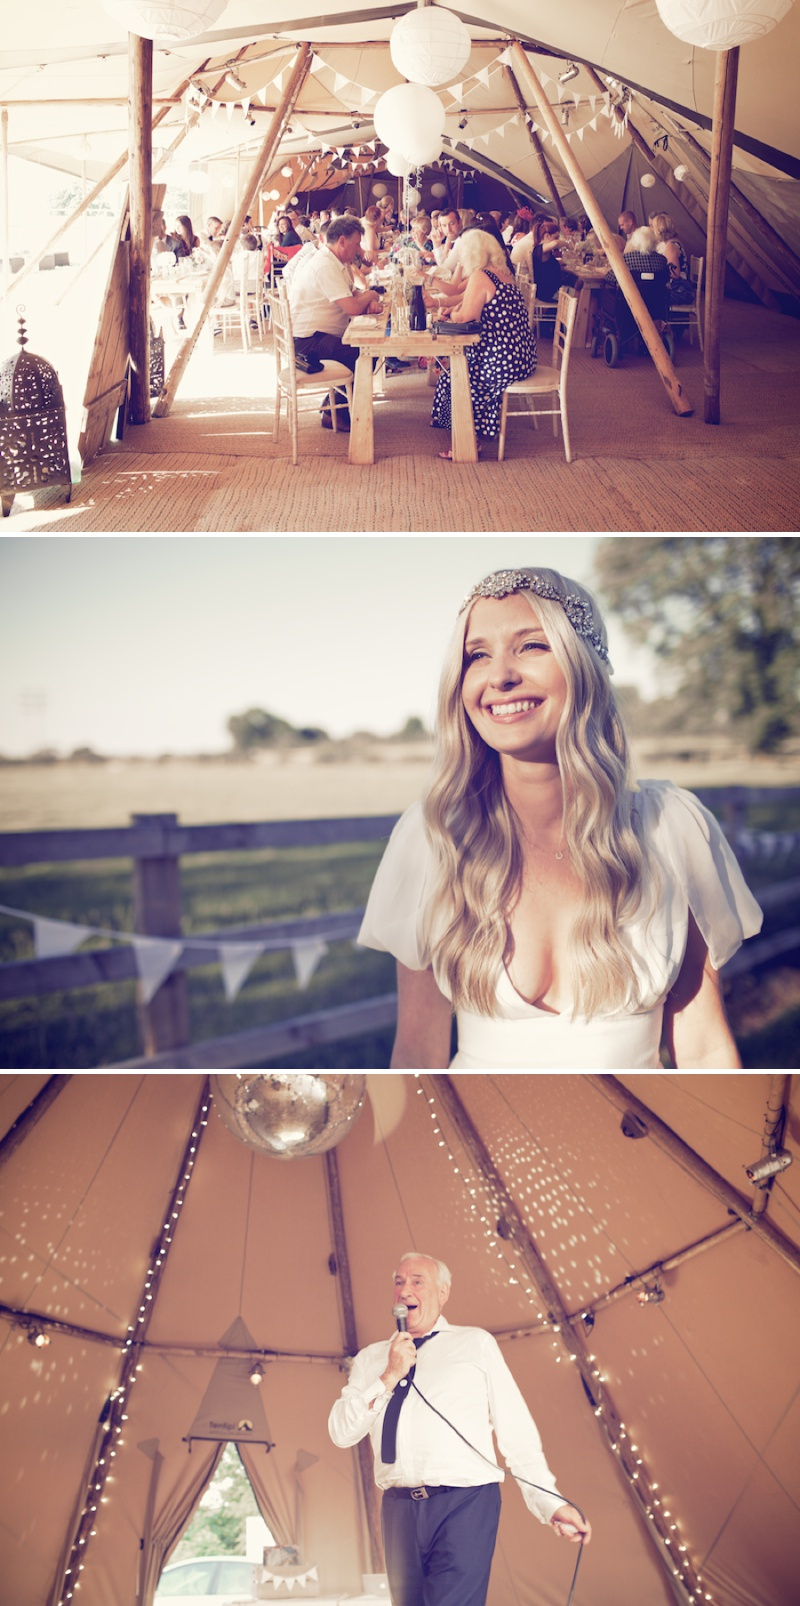 An Ethereal Bohemian Inspired Wedding At Standlow Farm With Tipis From Papakata A David Fielden Dress And Juliet Cap Veil With A Sweet Avalanche Rose Bouquet 12 Silver Words.